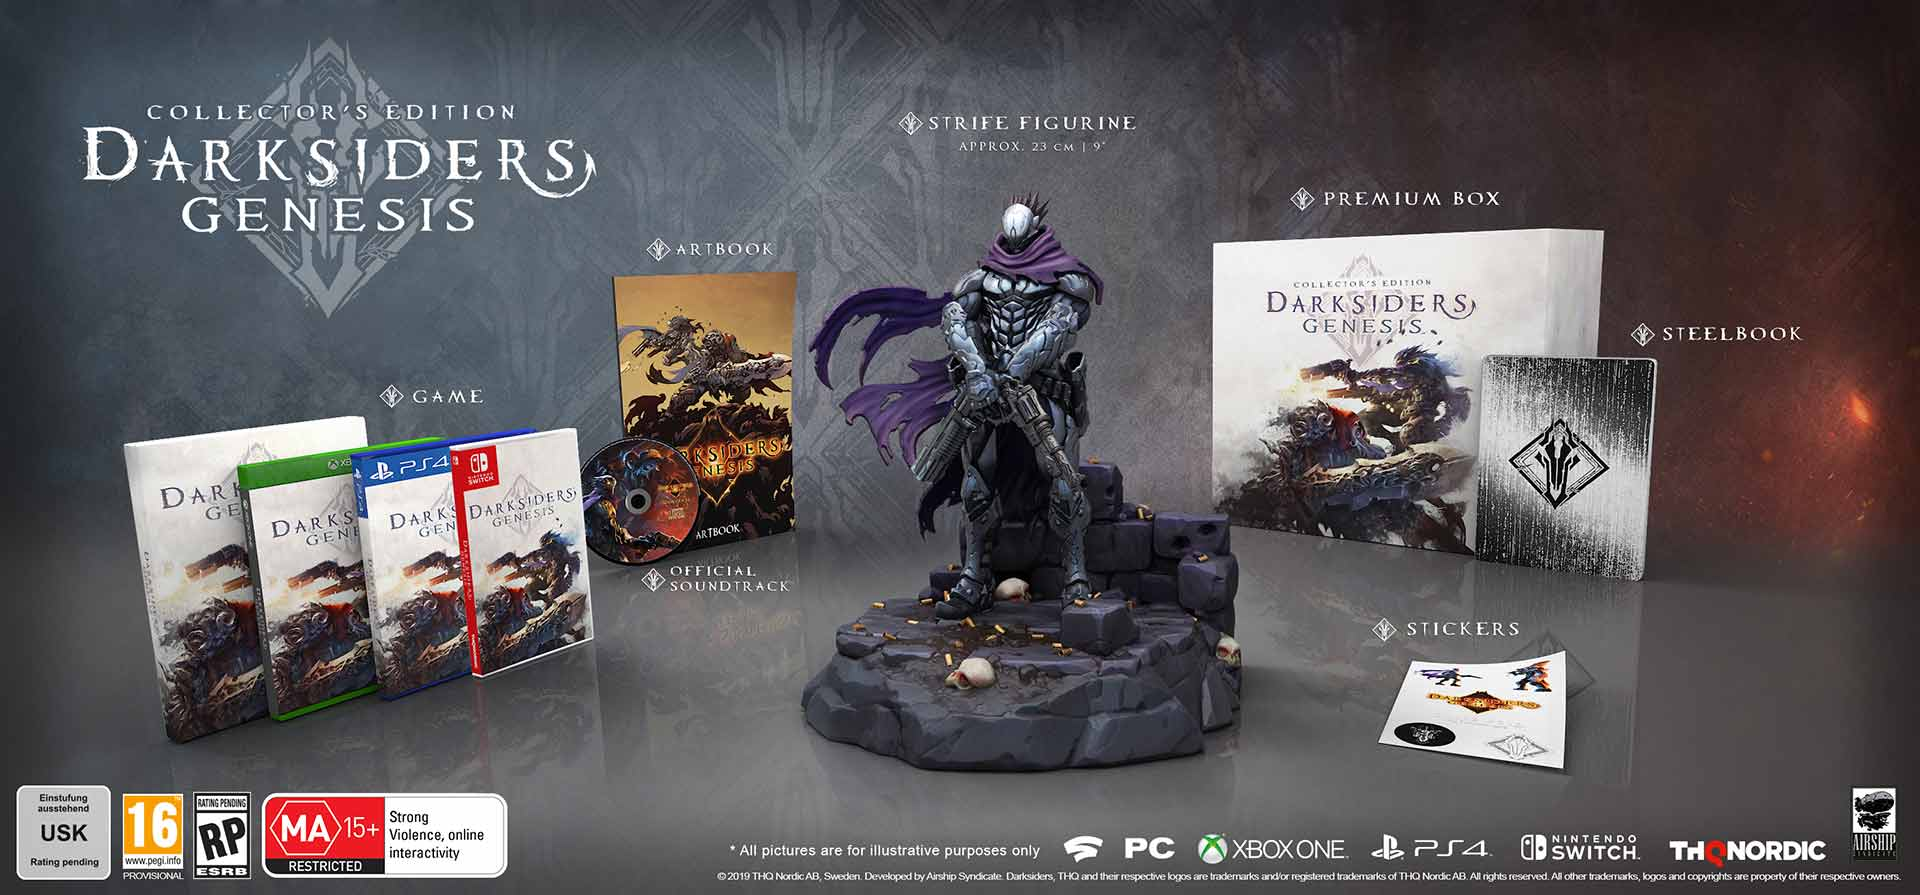 Darksiders Genesis - Collectors Edition - Screenshot 1